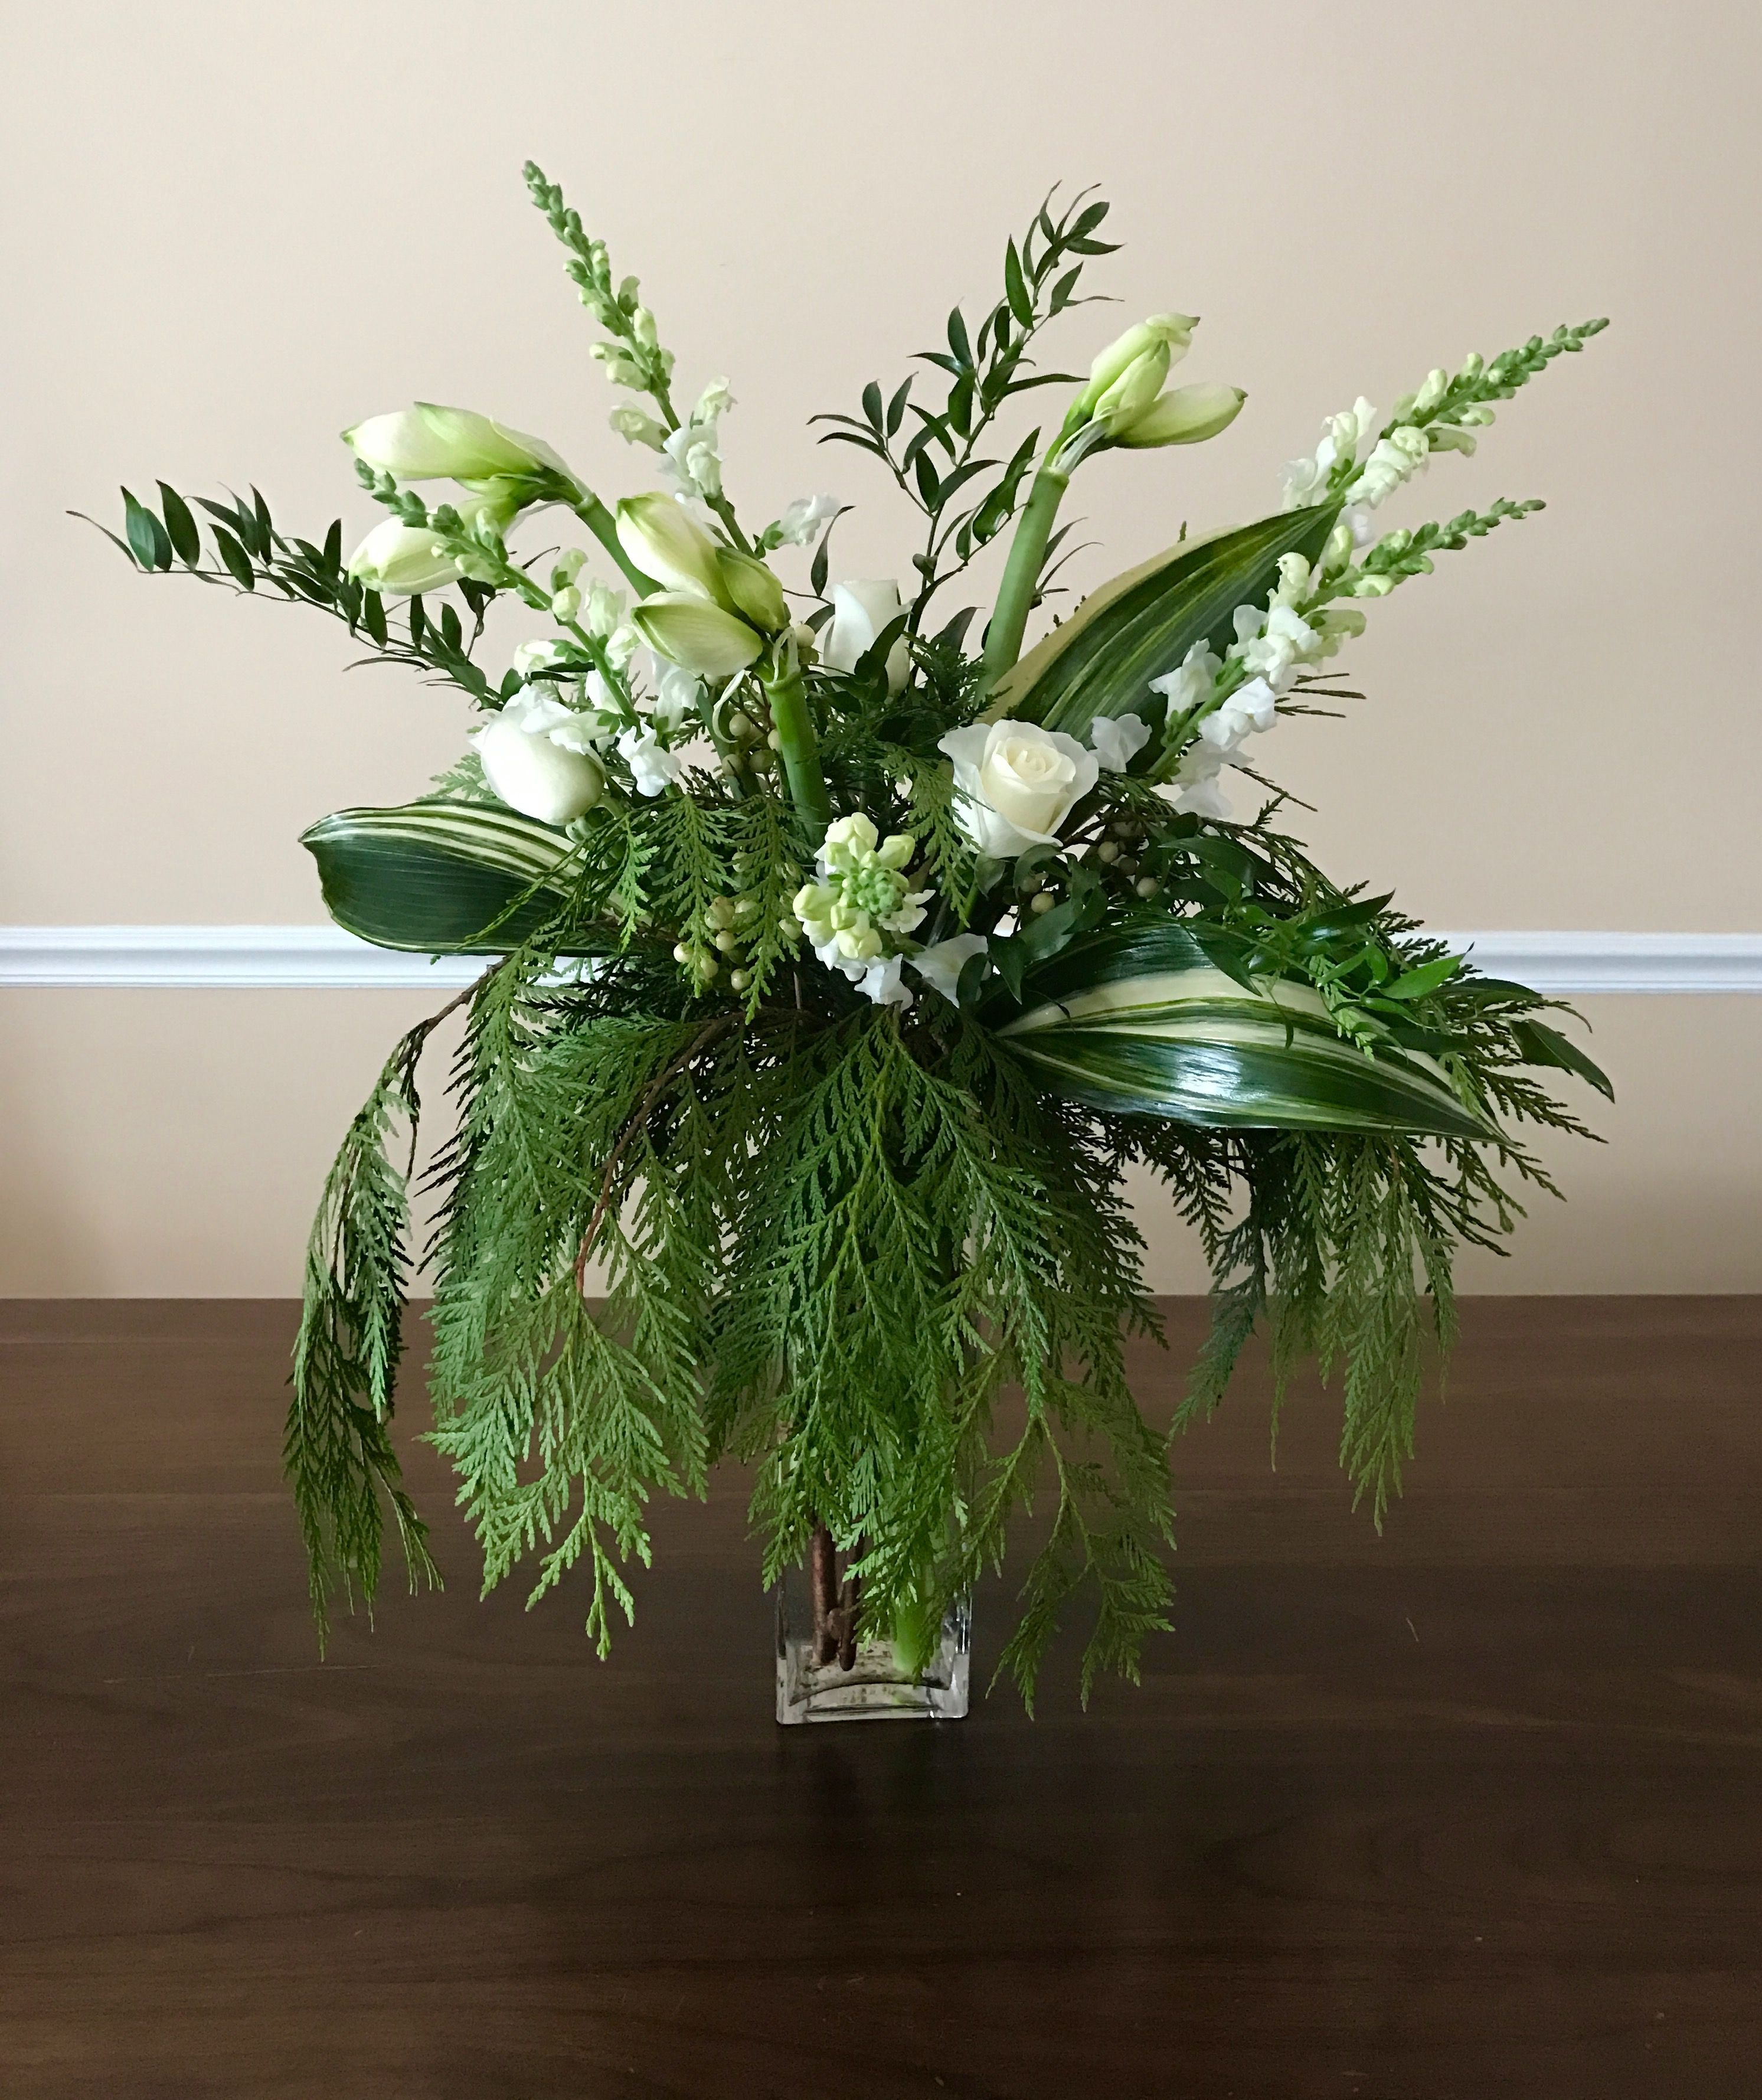 Tall Flower Arrangement In White And Green Color Tones Winter Greens Variegate Fresh Flowers Arrangements Tall Flower Arrangements Purple Flower Arrangements